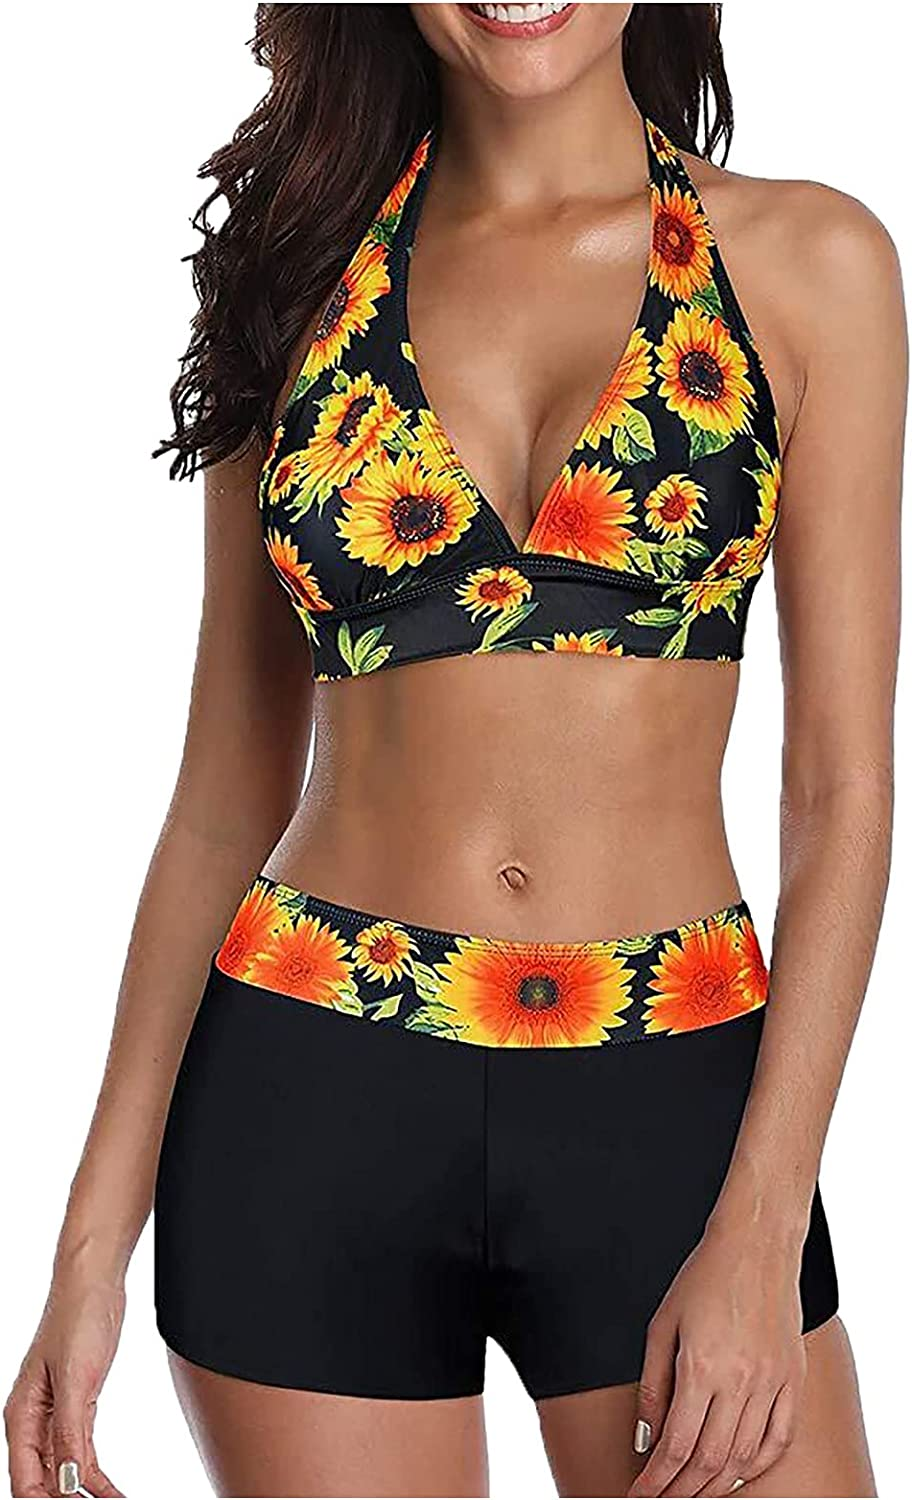 Women's Sunflower Print Halter Two Piece Ne Max 51% OFF Sexy V Mesa Mall Suits Bathing